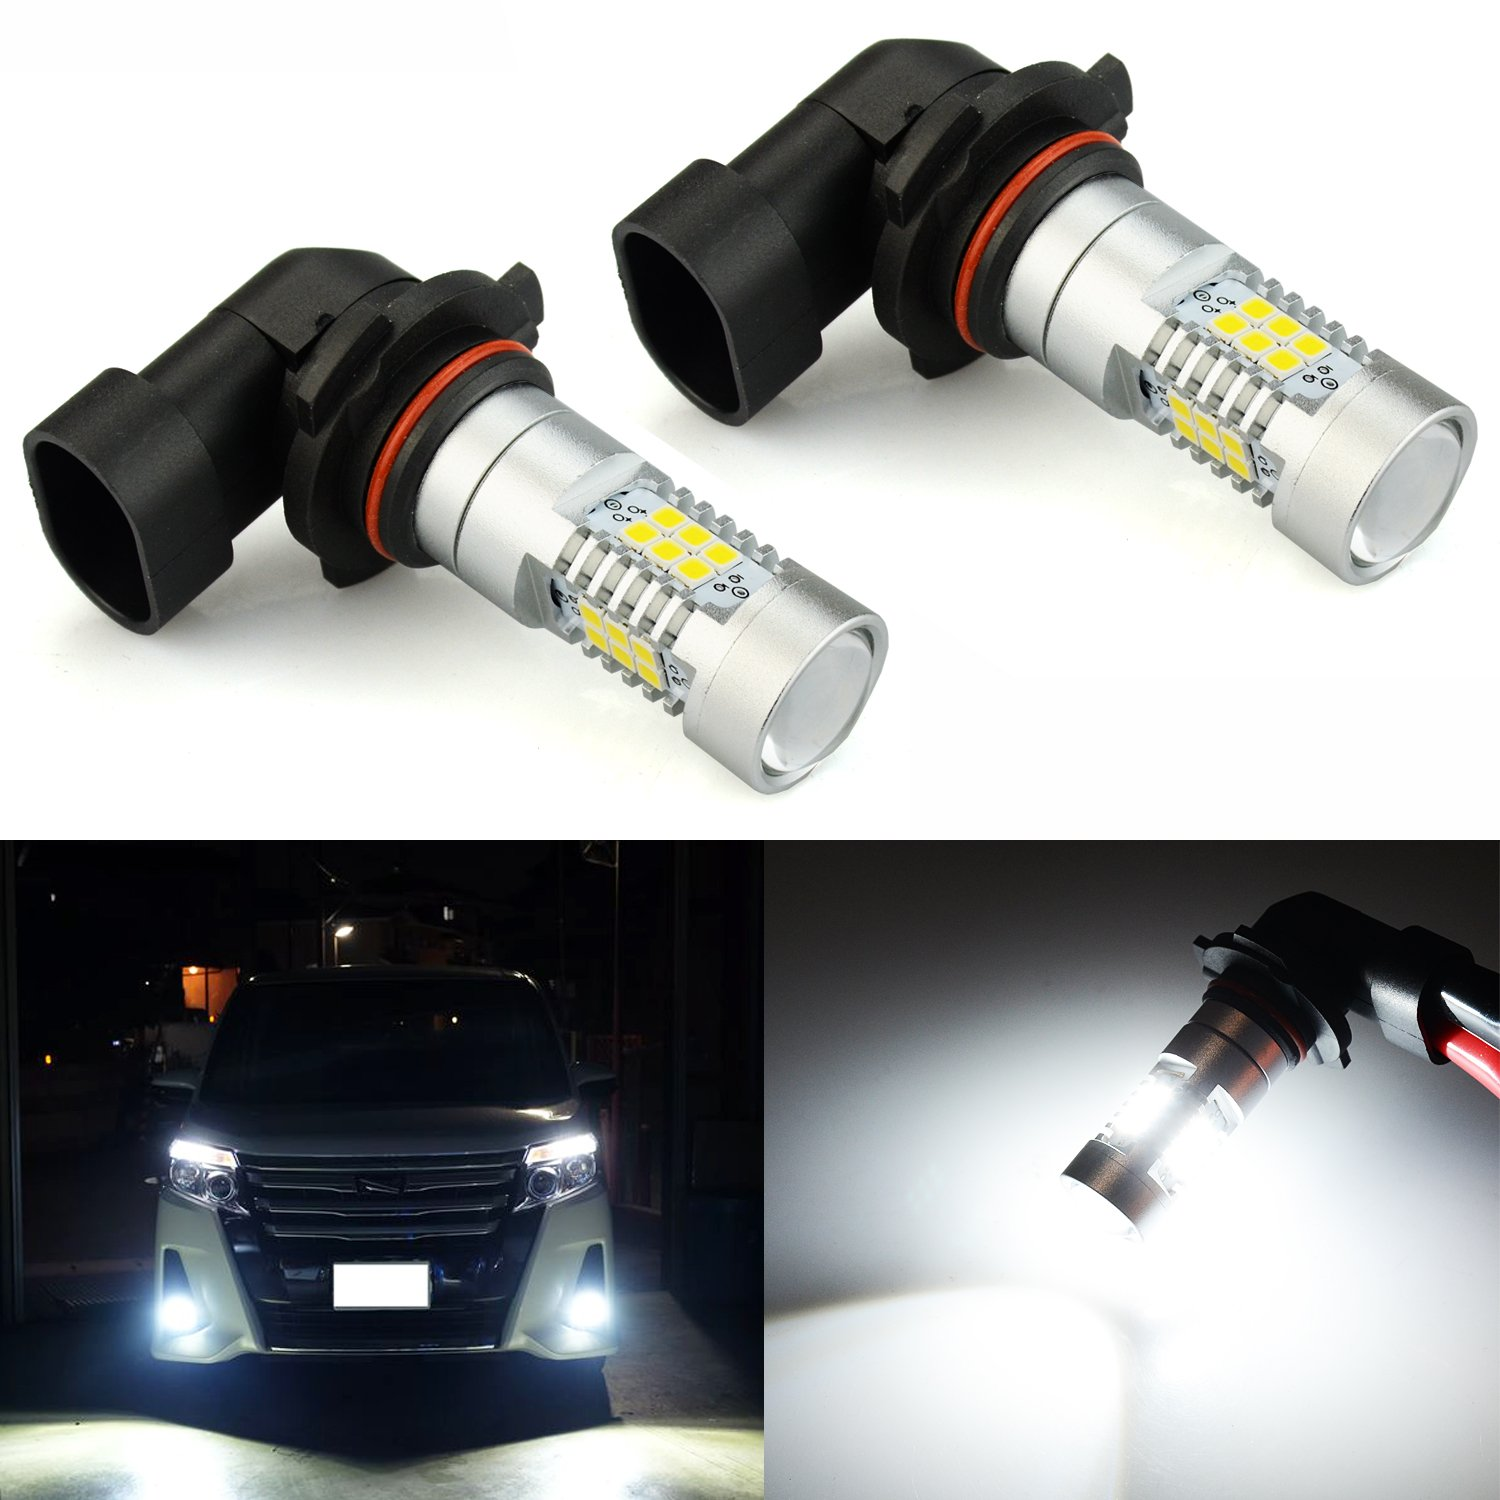 JDM ASTAR 2520 Lumens Extremely Bright PX Chips H10 9140 9145 LED Fog Light Bulbs with Projector for DRL or Fog Lights, Xenon White by JDM ASTAR (Image #1)